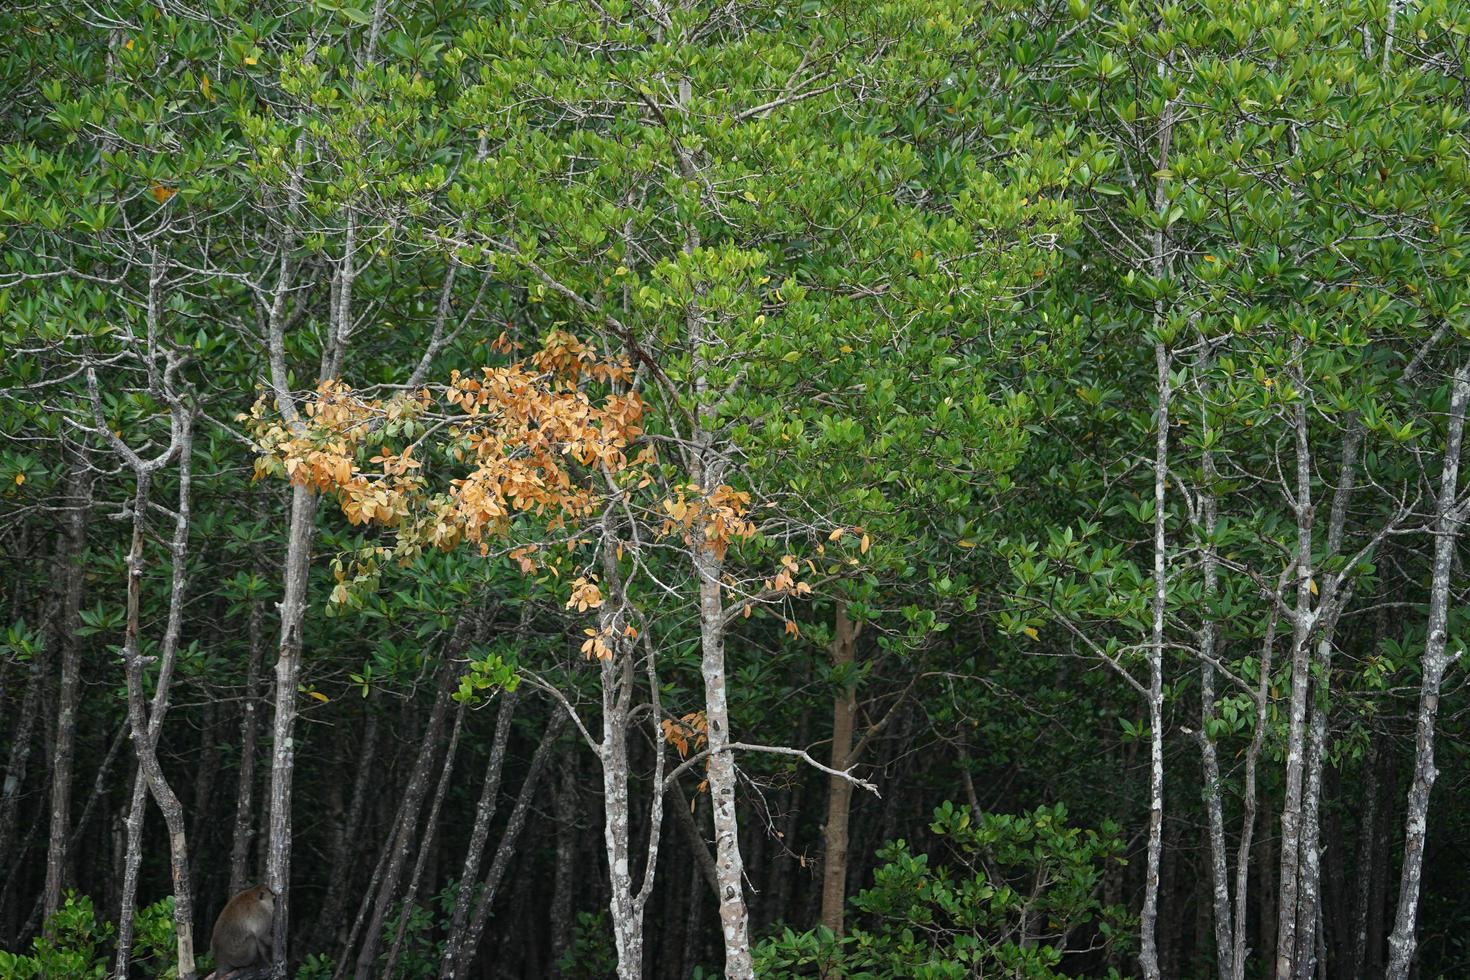 Crowded of trees in the mangrove forest photo